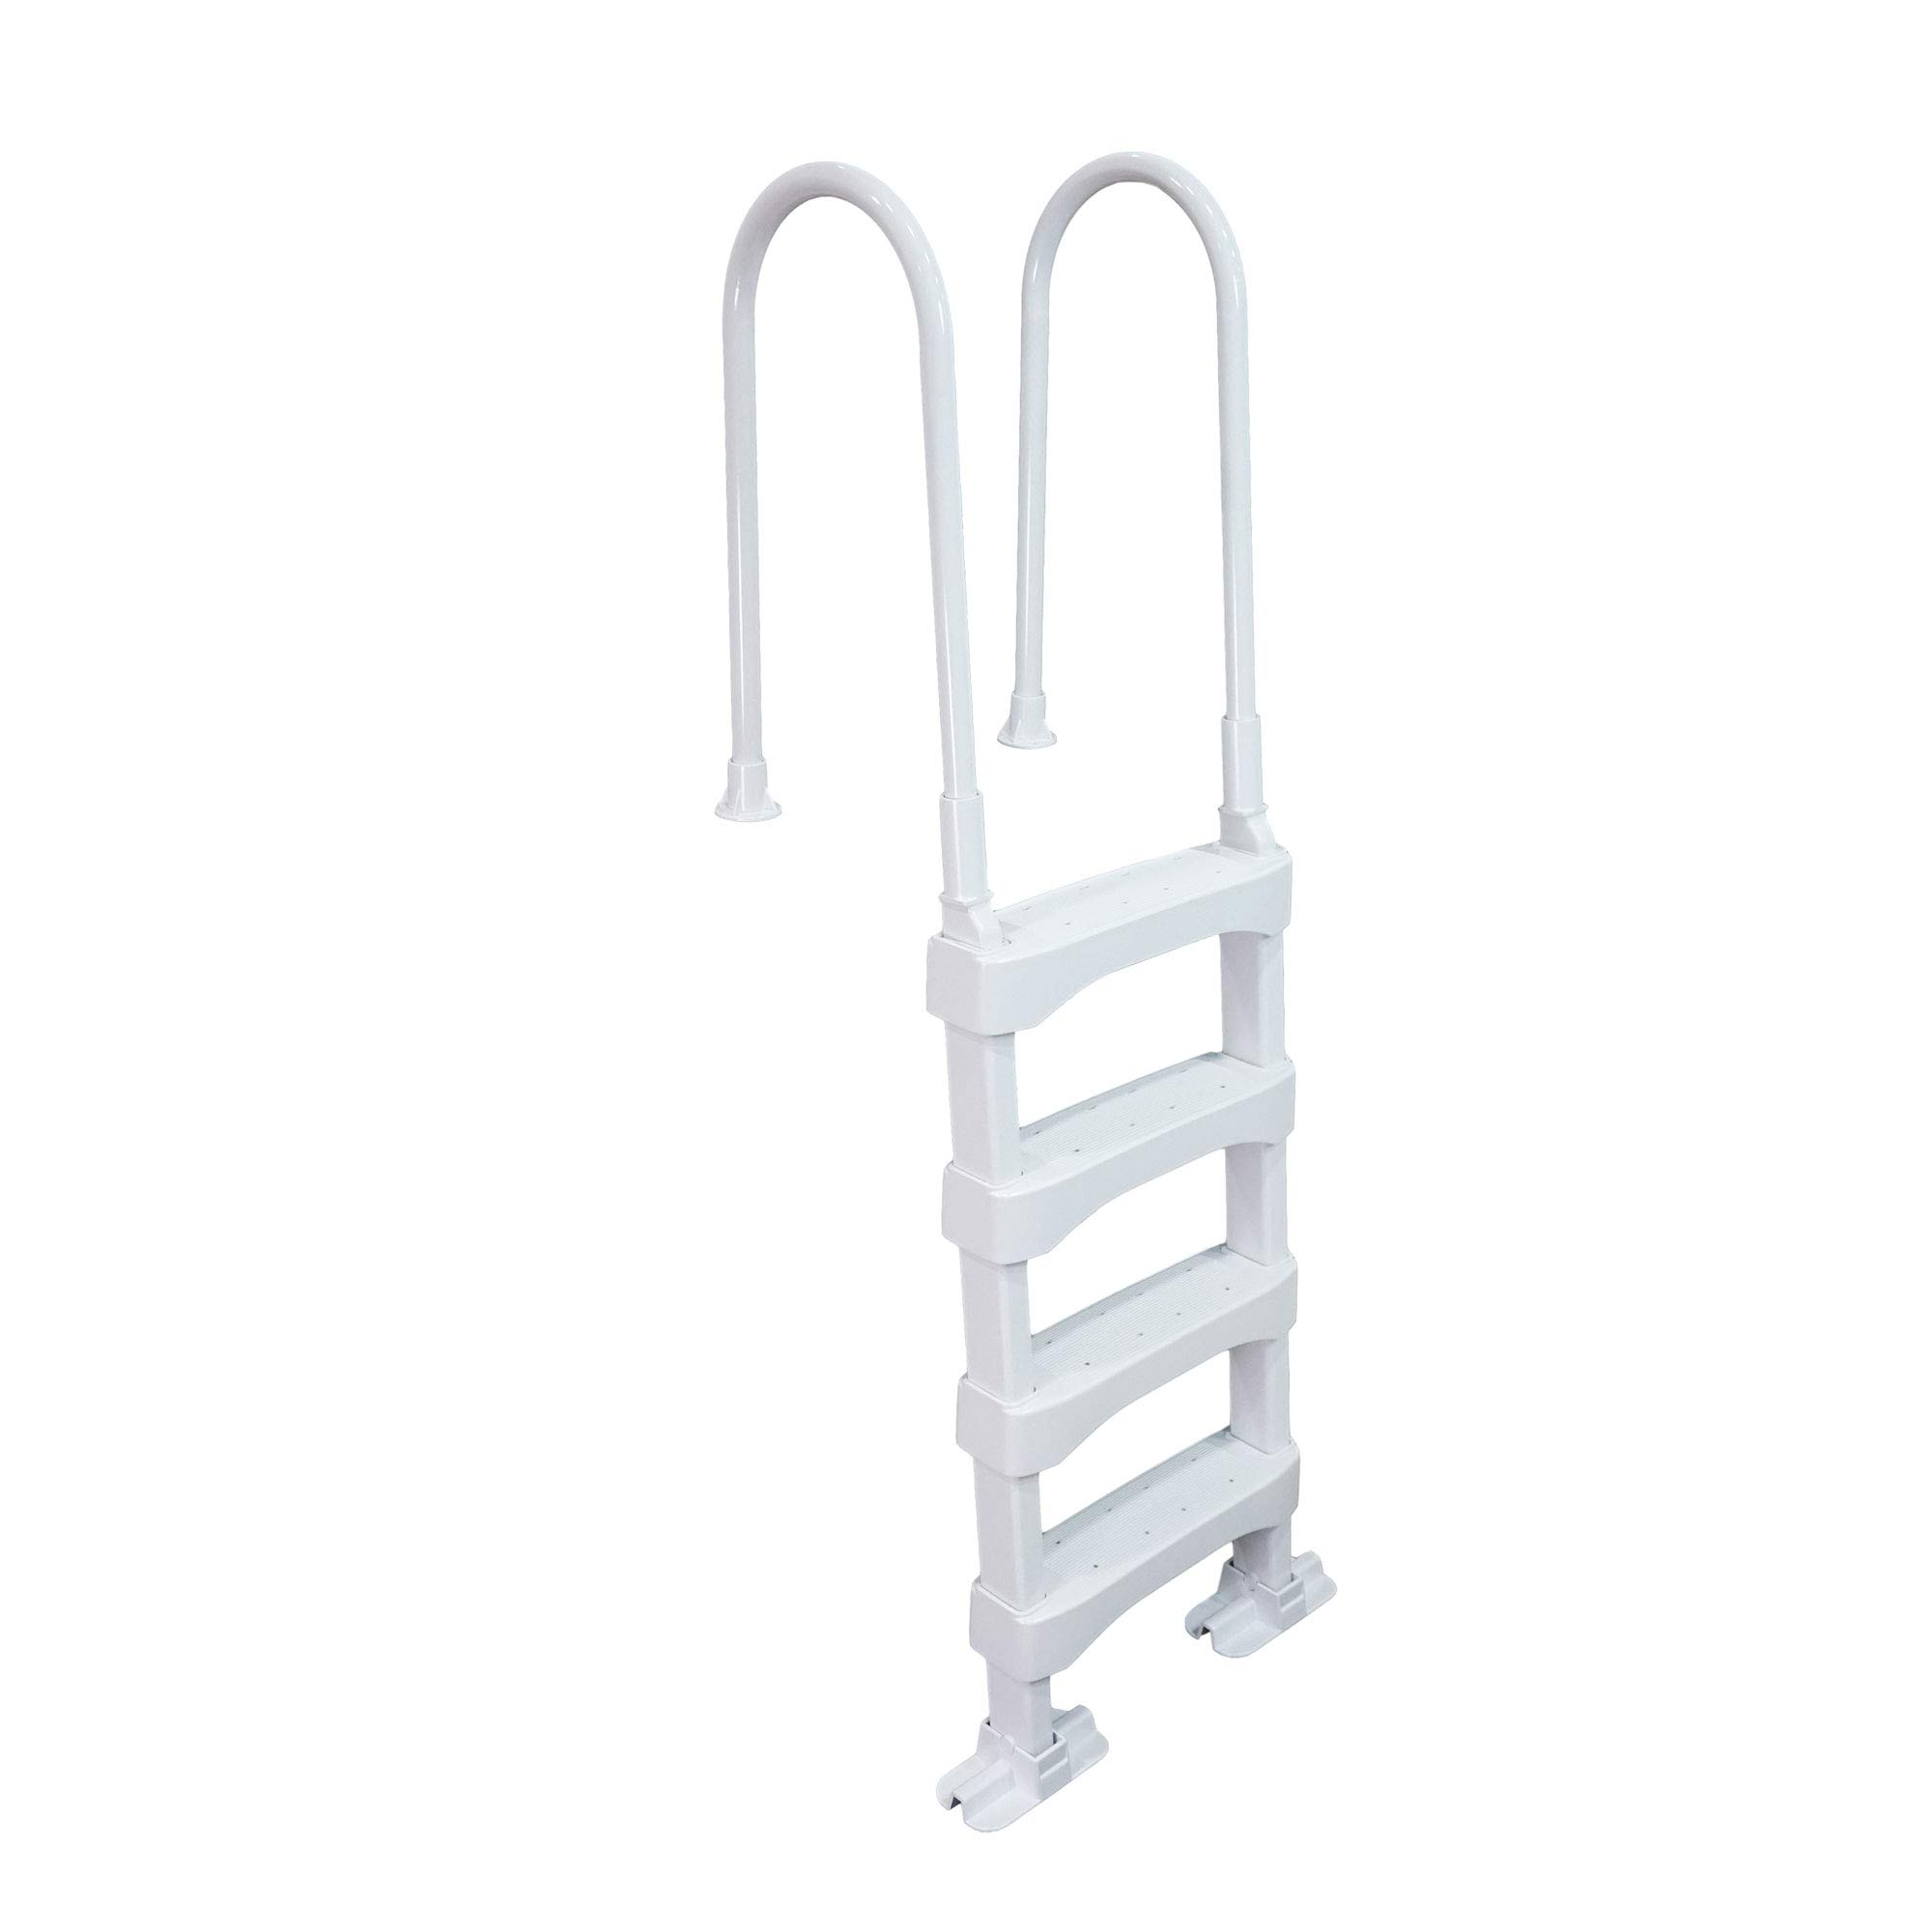 Vinyl Works SLD2 In-Pool 4 Step Ladder for 60 Inch Swimming Pool Walls, White by Vinyl Works